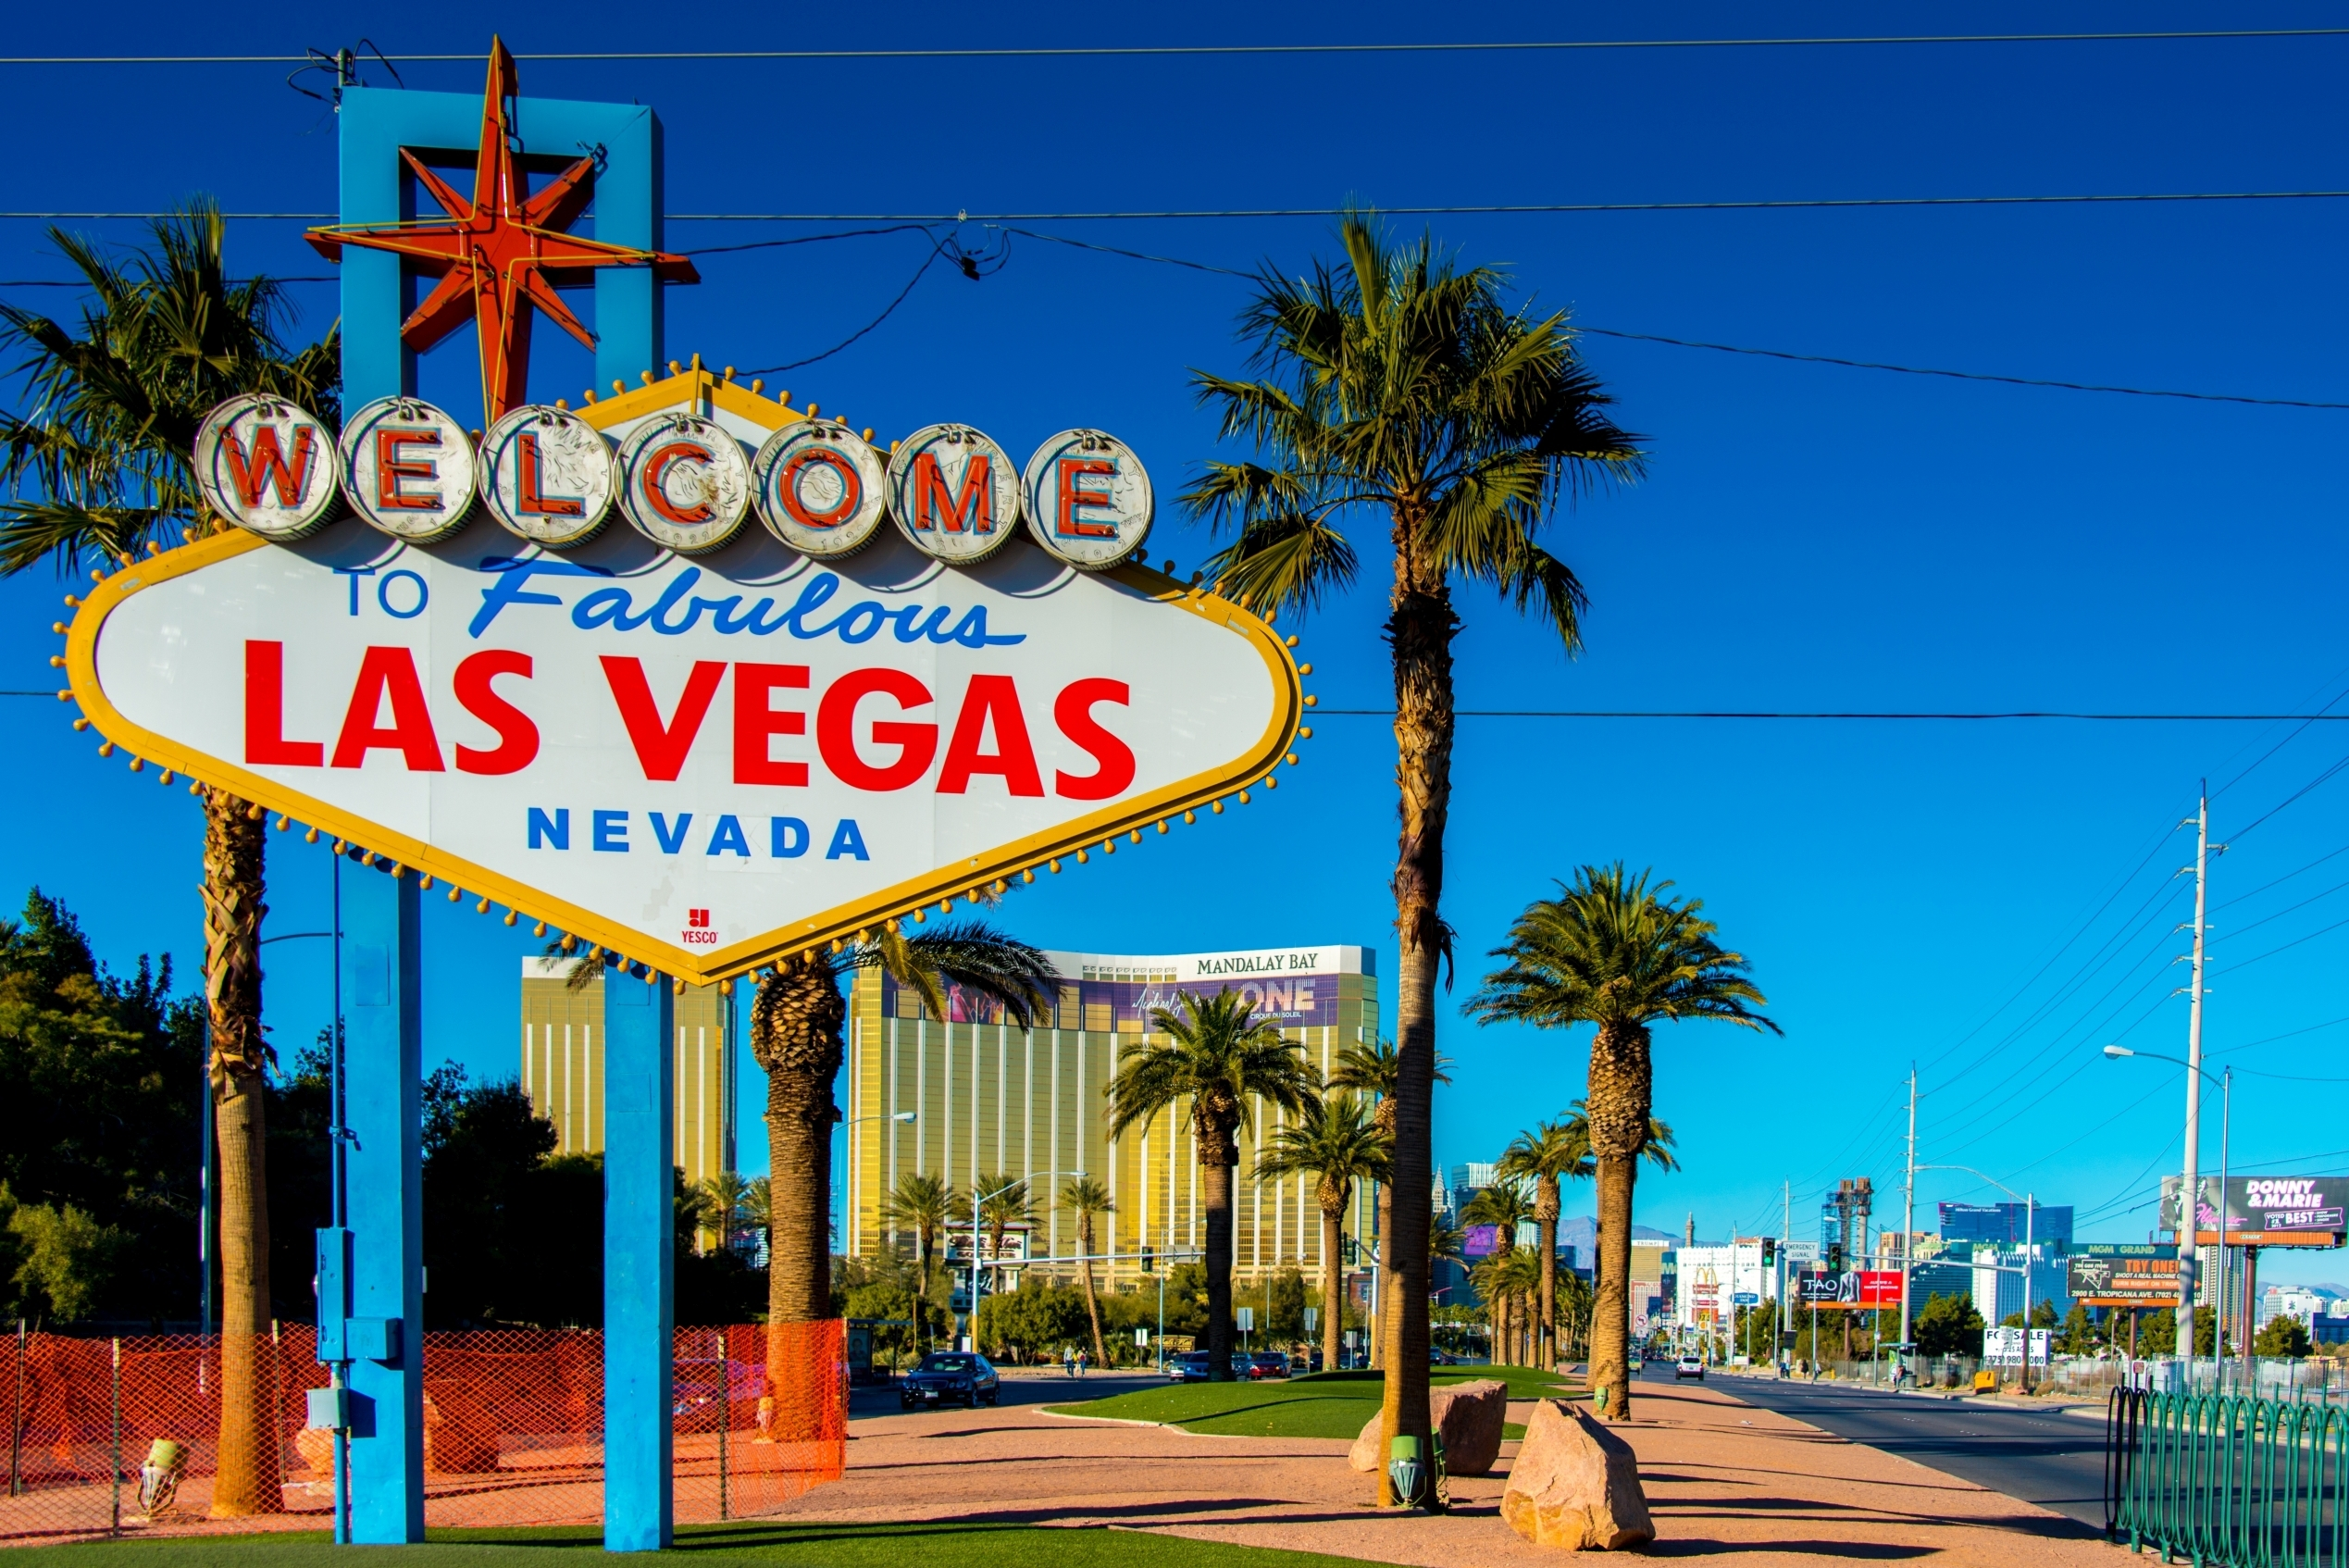 A view of the iconic Welcome to Las Vegas sign